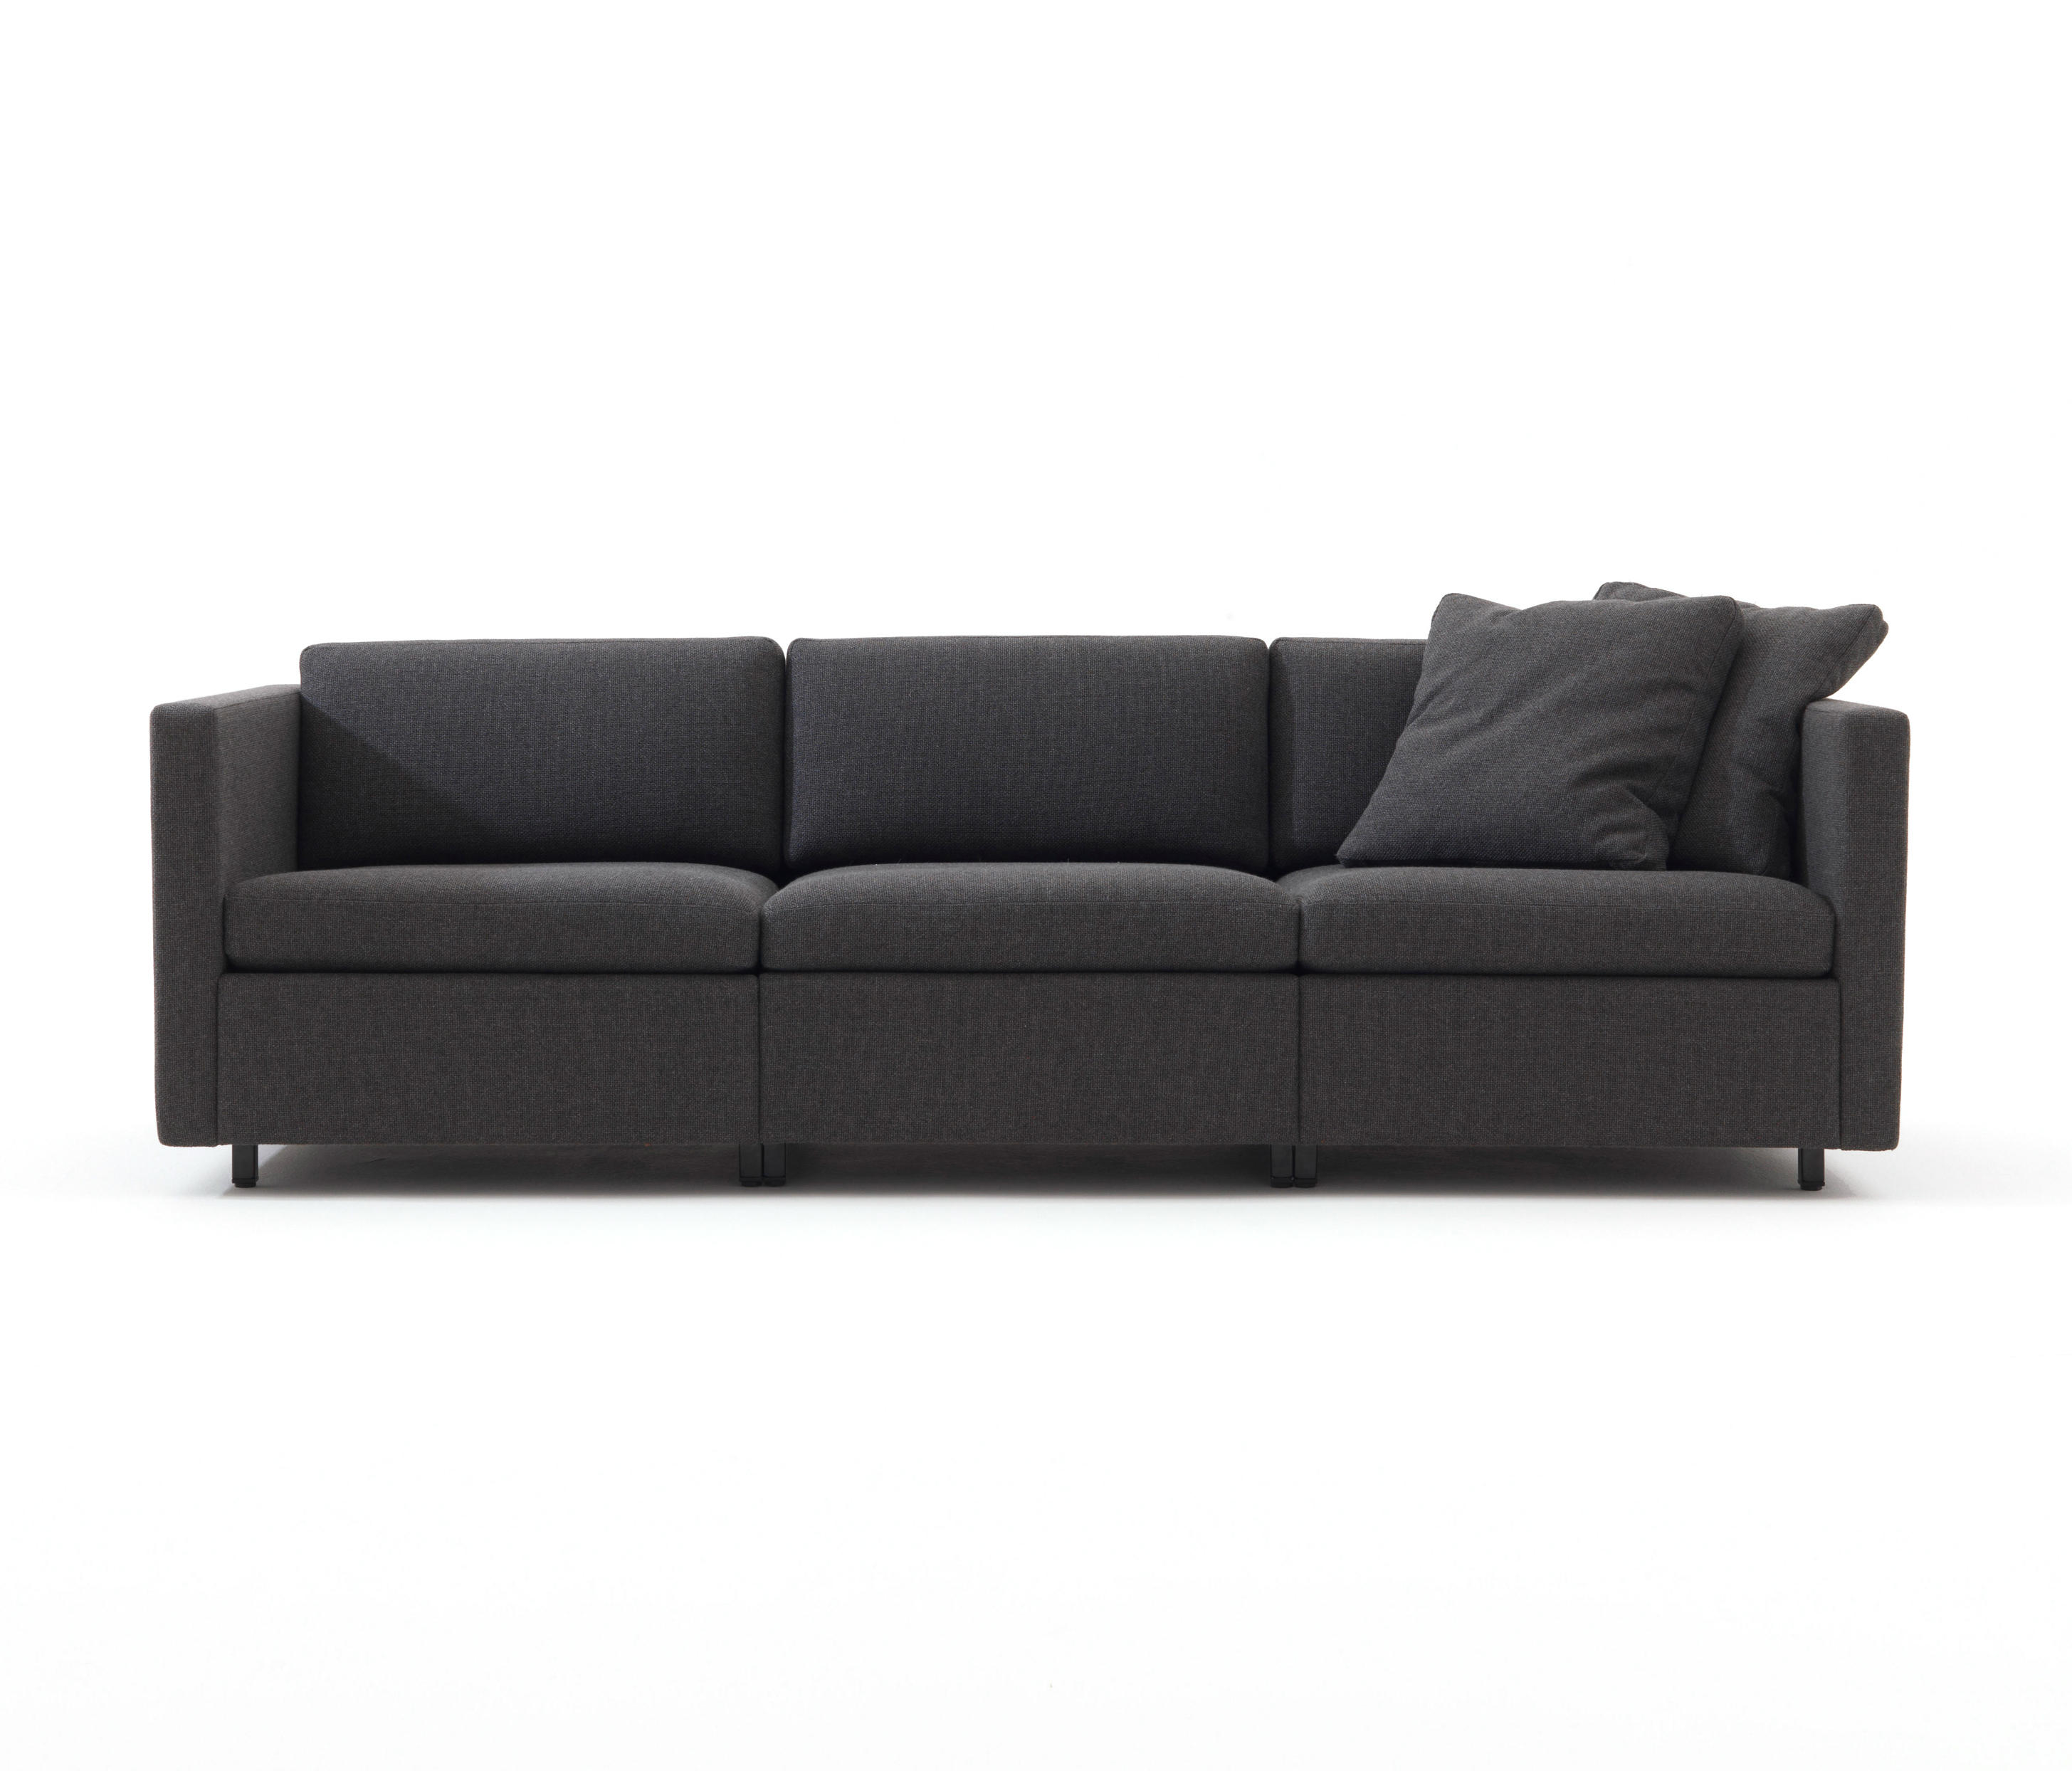 Superieur ... Pfister Lounge Seating By Knoll International | Sofas ...